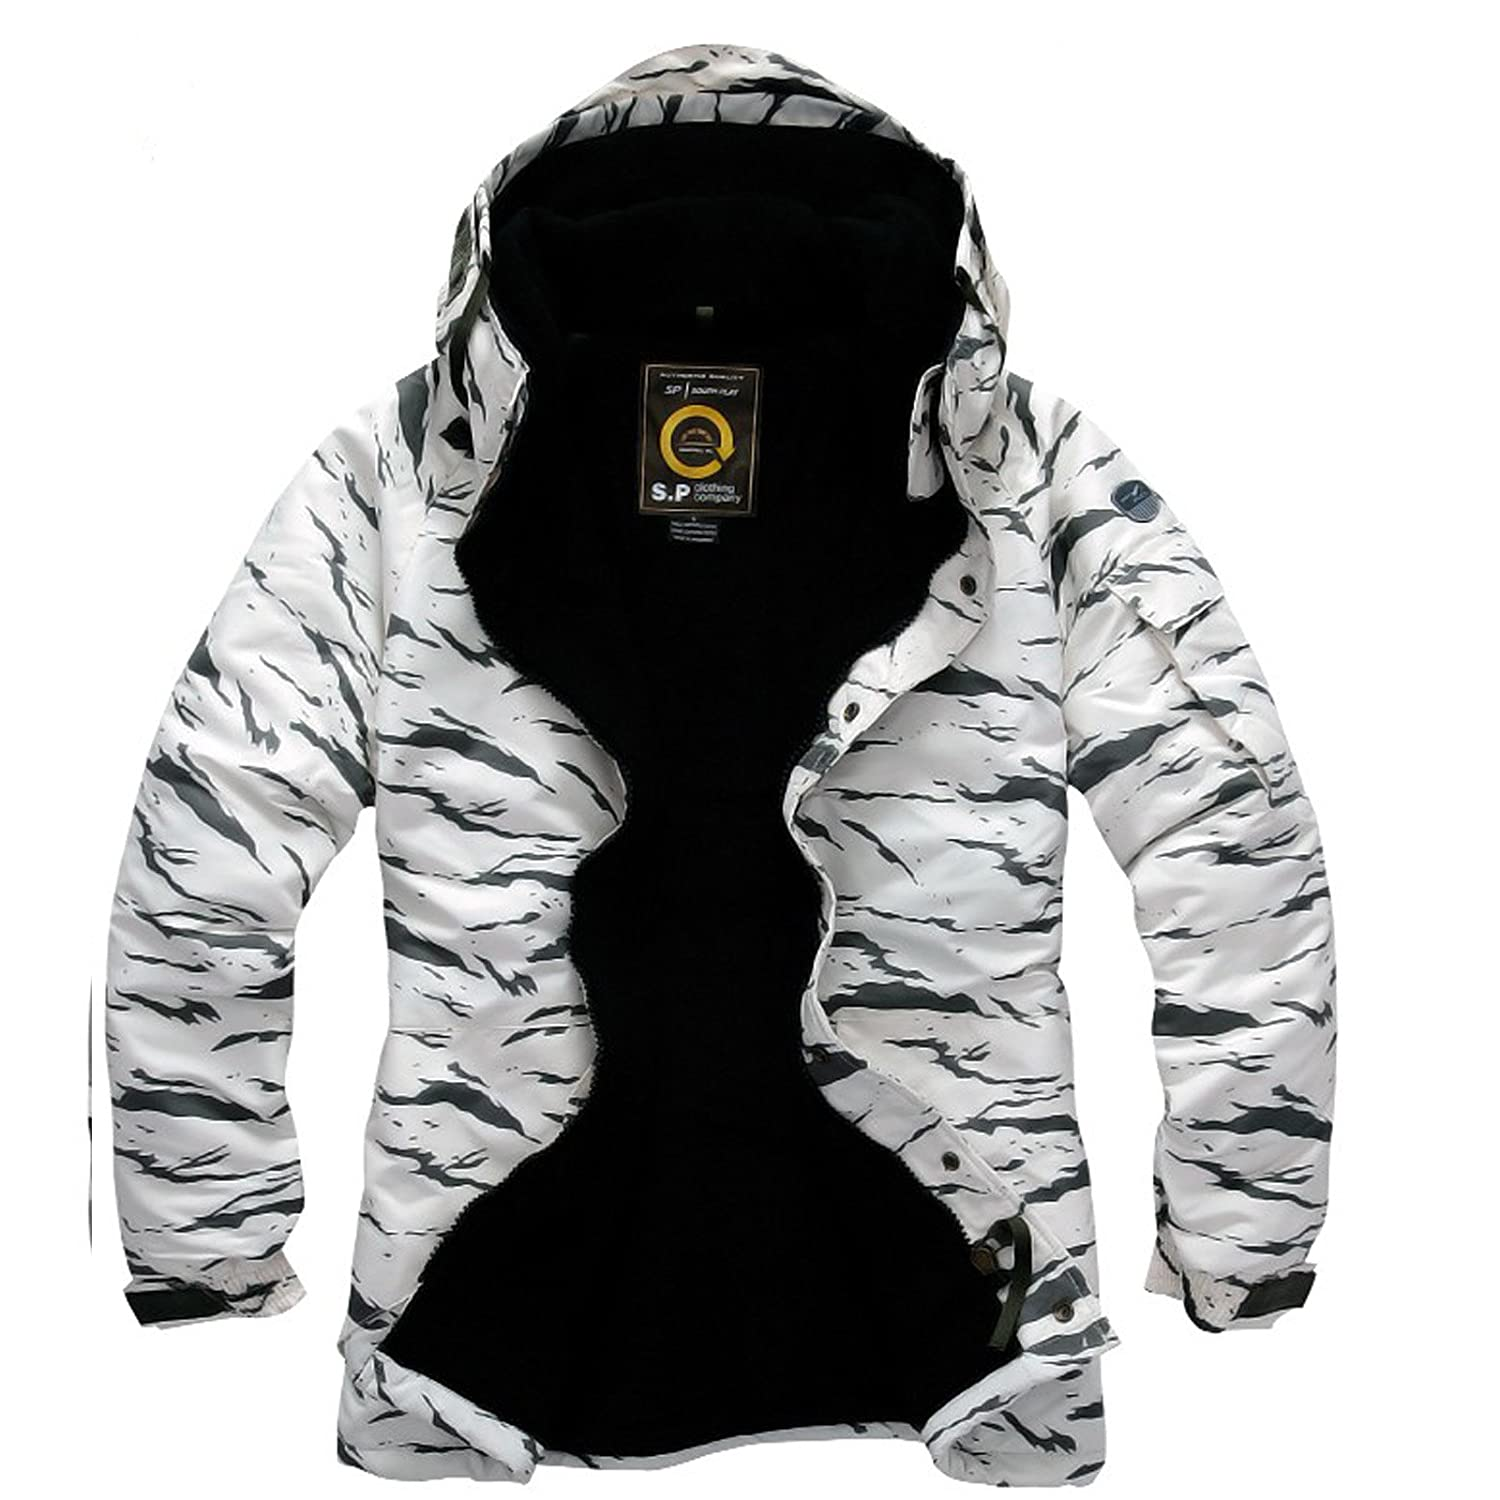 4e3b81c203 Amazon.com  Southplay Mens Waterproof Sky-snowboard Military Jacket White  Camo (Small)  Clothing